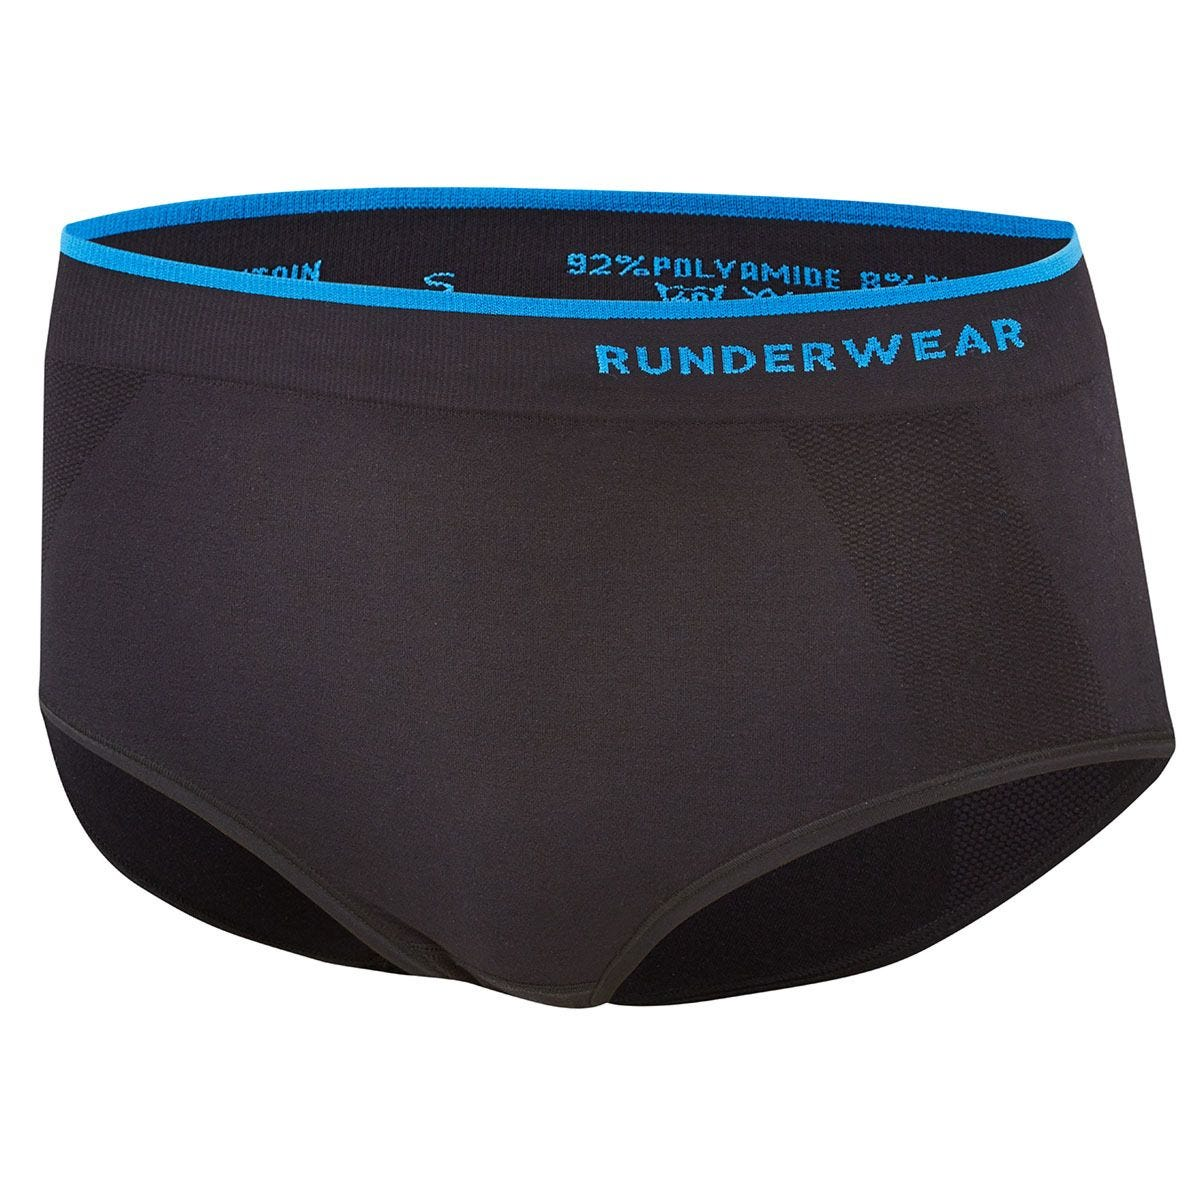 Runderwear Women's Running Briefs Medium - Black